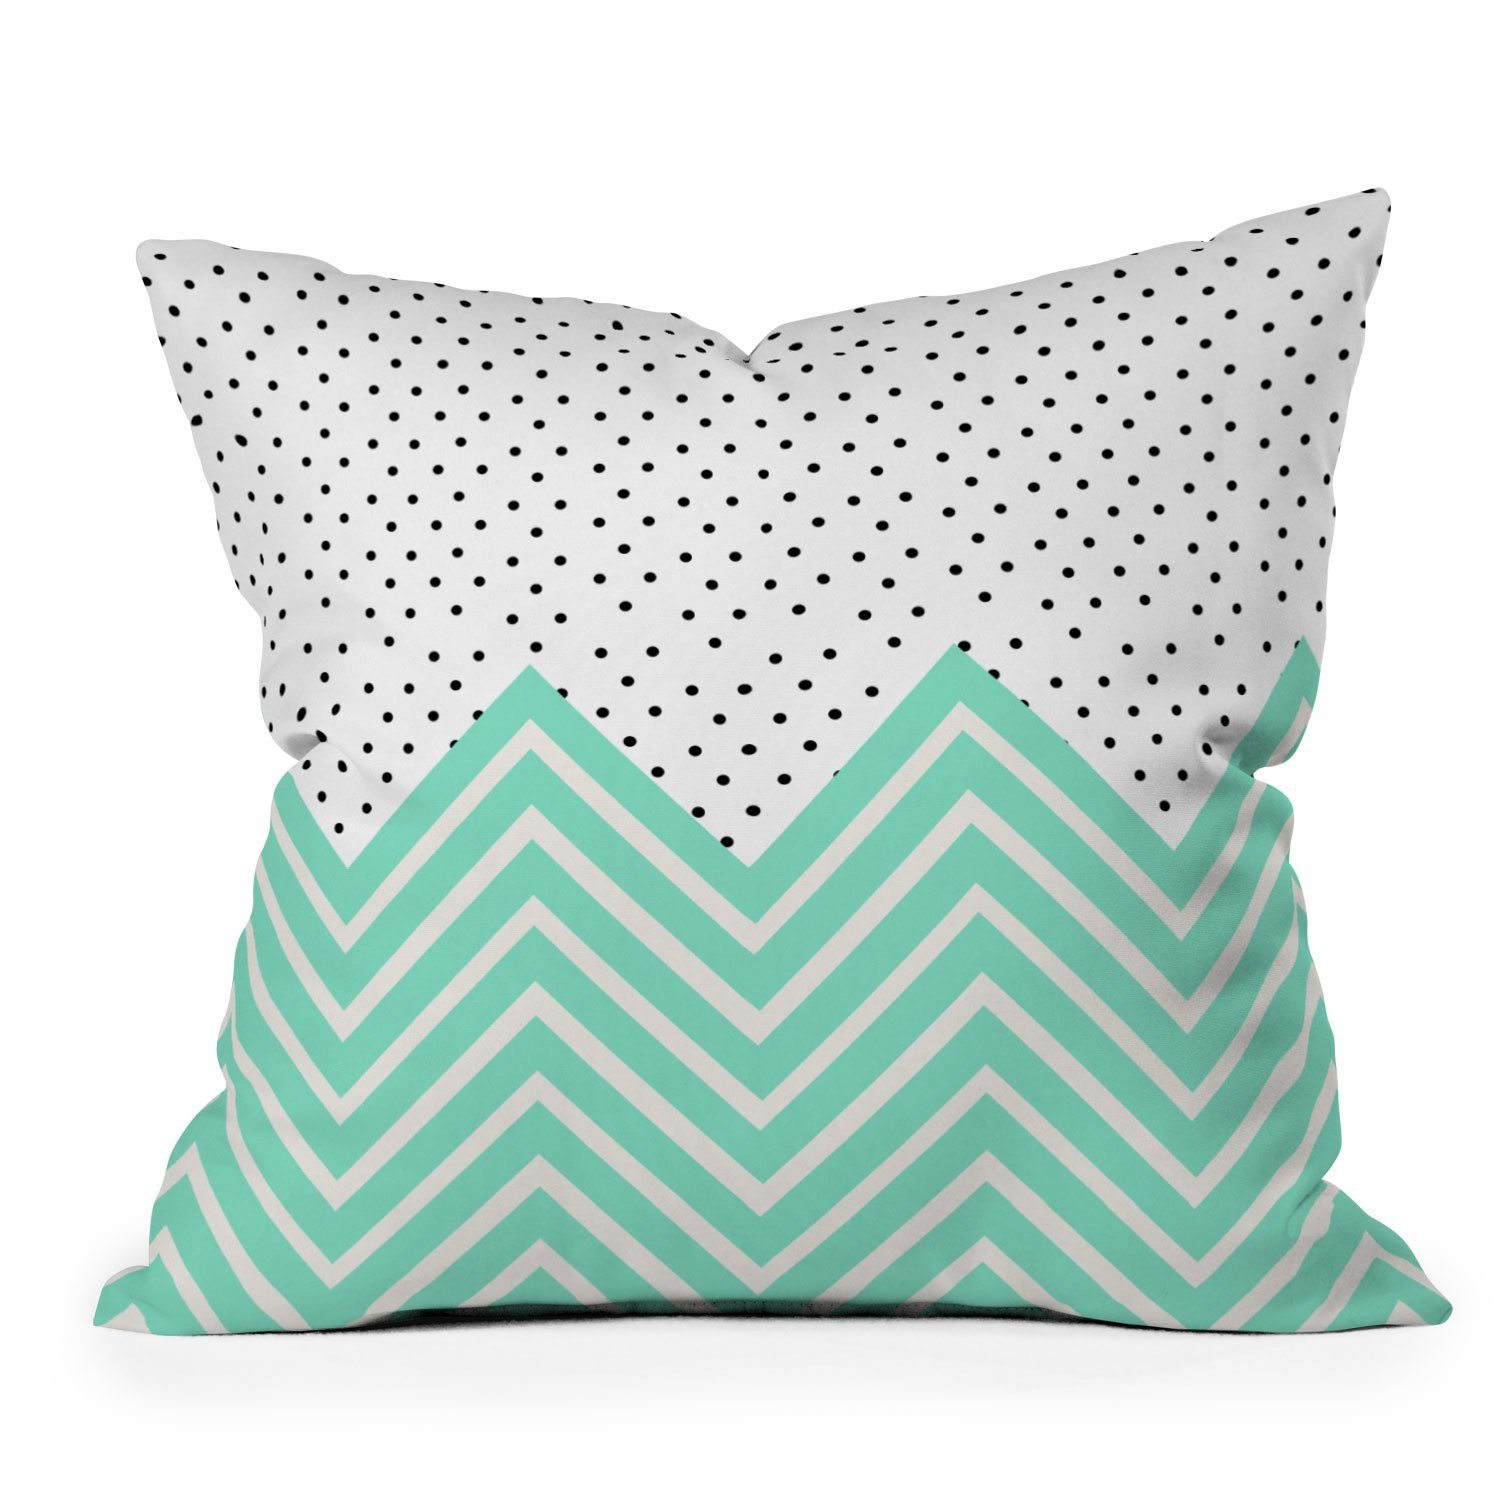 Image of Allyson Johnson Minty Chevron And Dots Throw Pillow